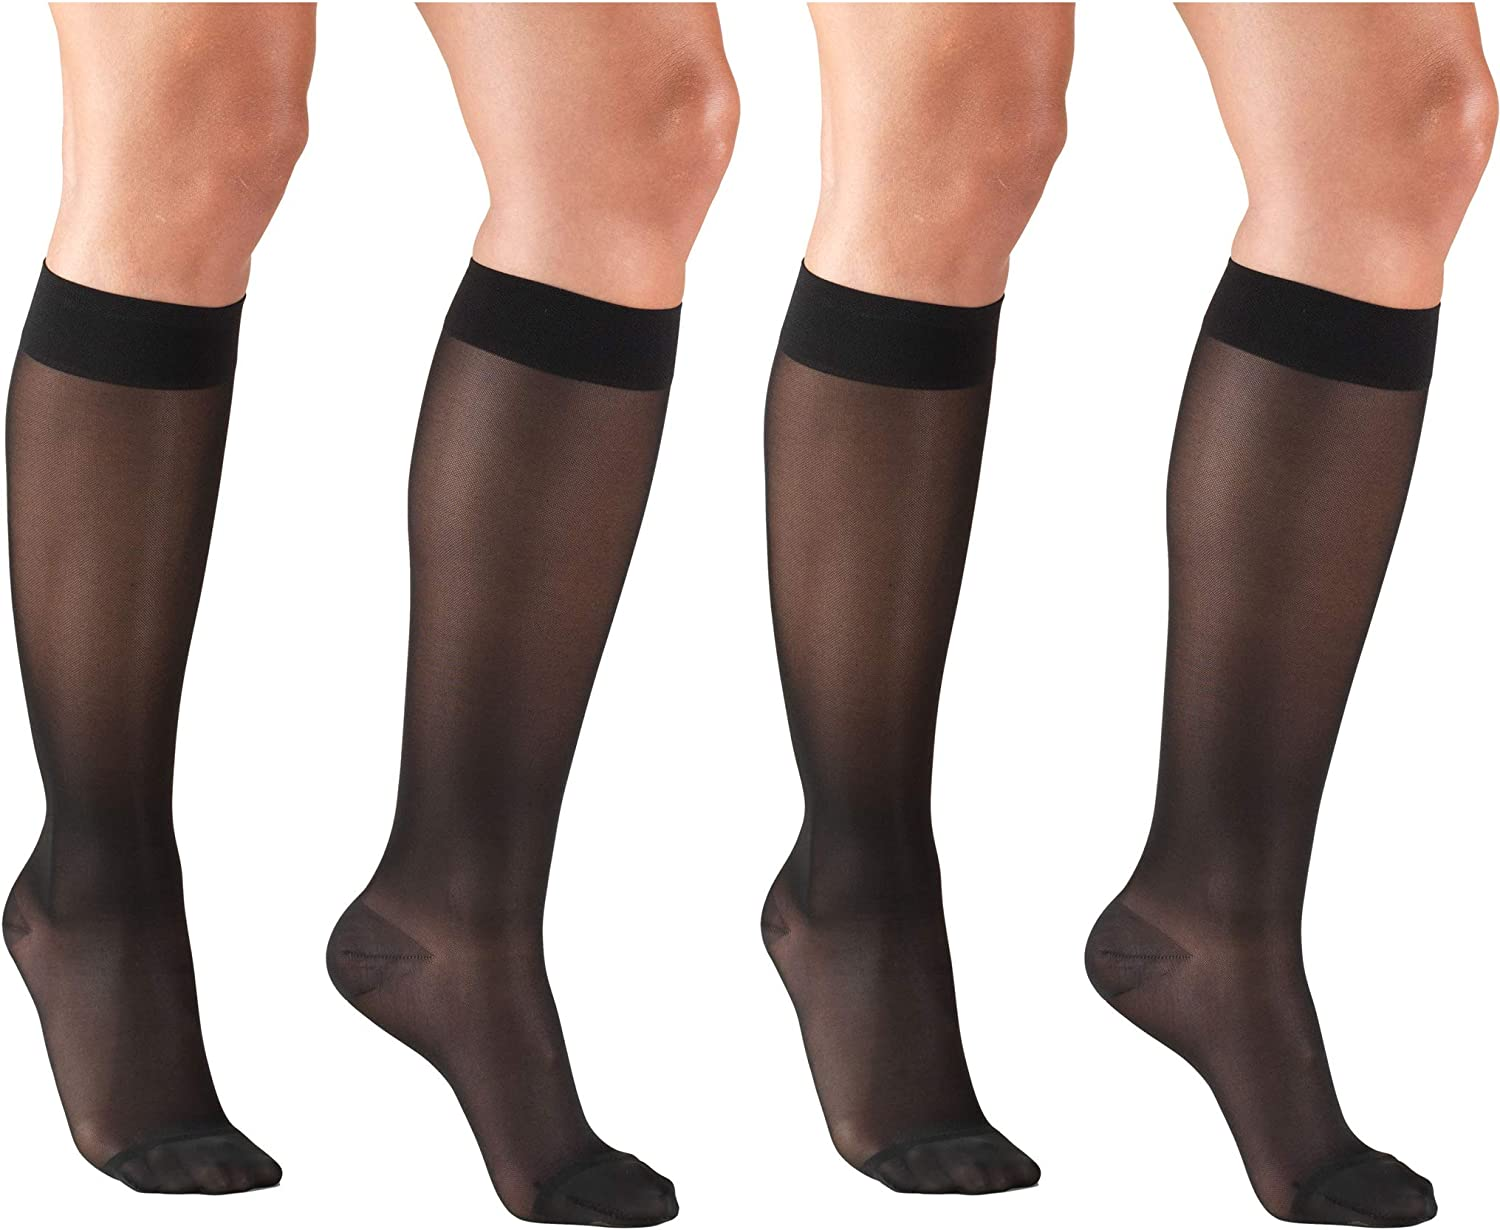 Medium Black Pack of 2 Truform Mens Knee High 15-20 mmHg Compression Dress Socks